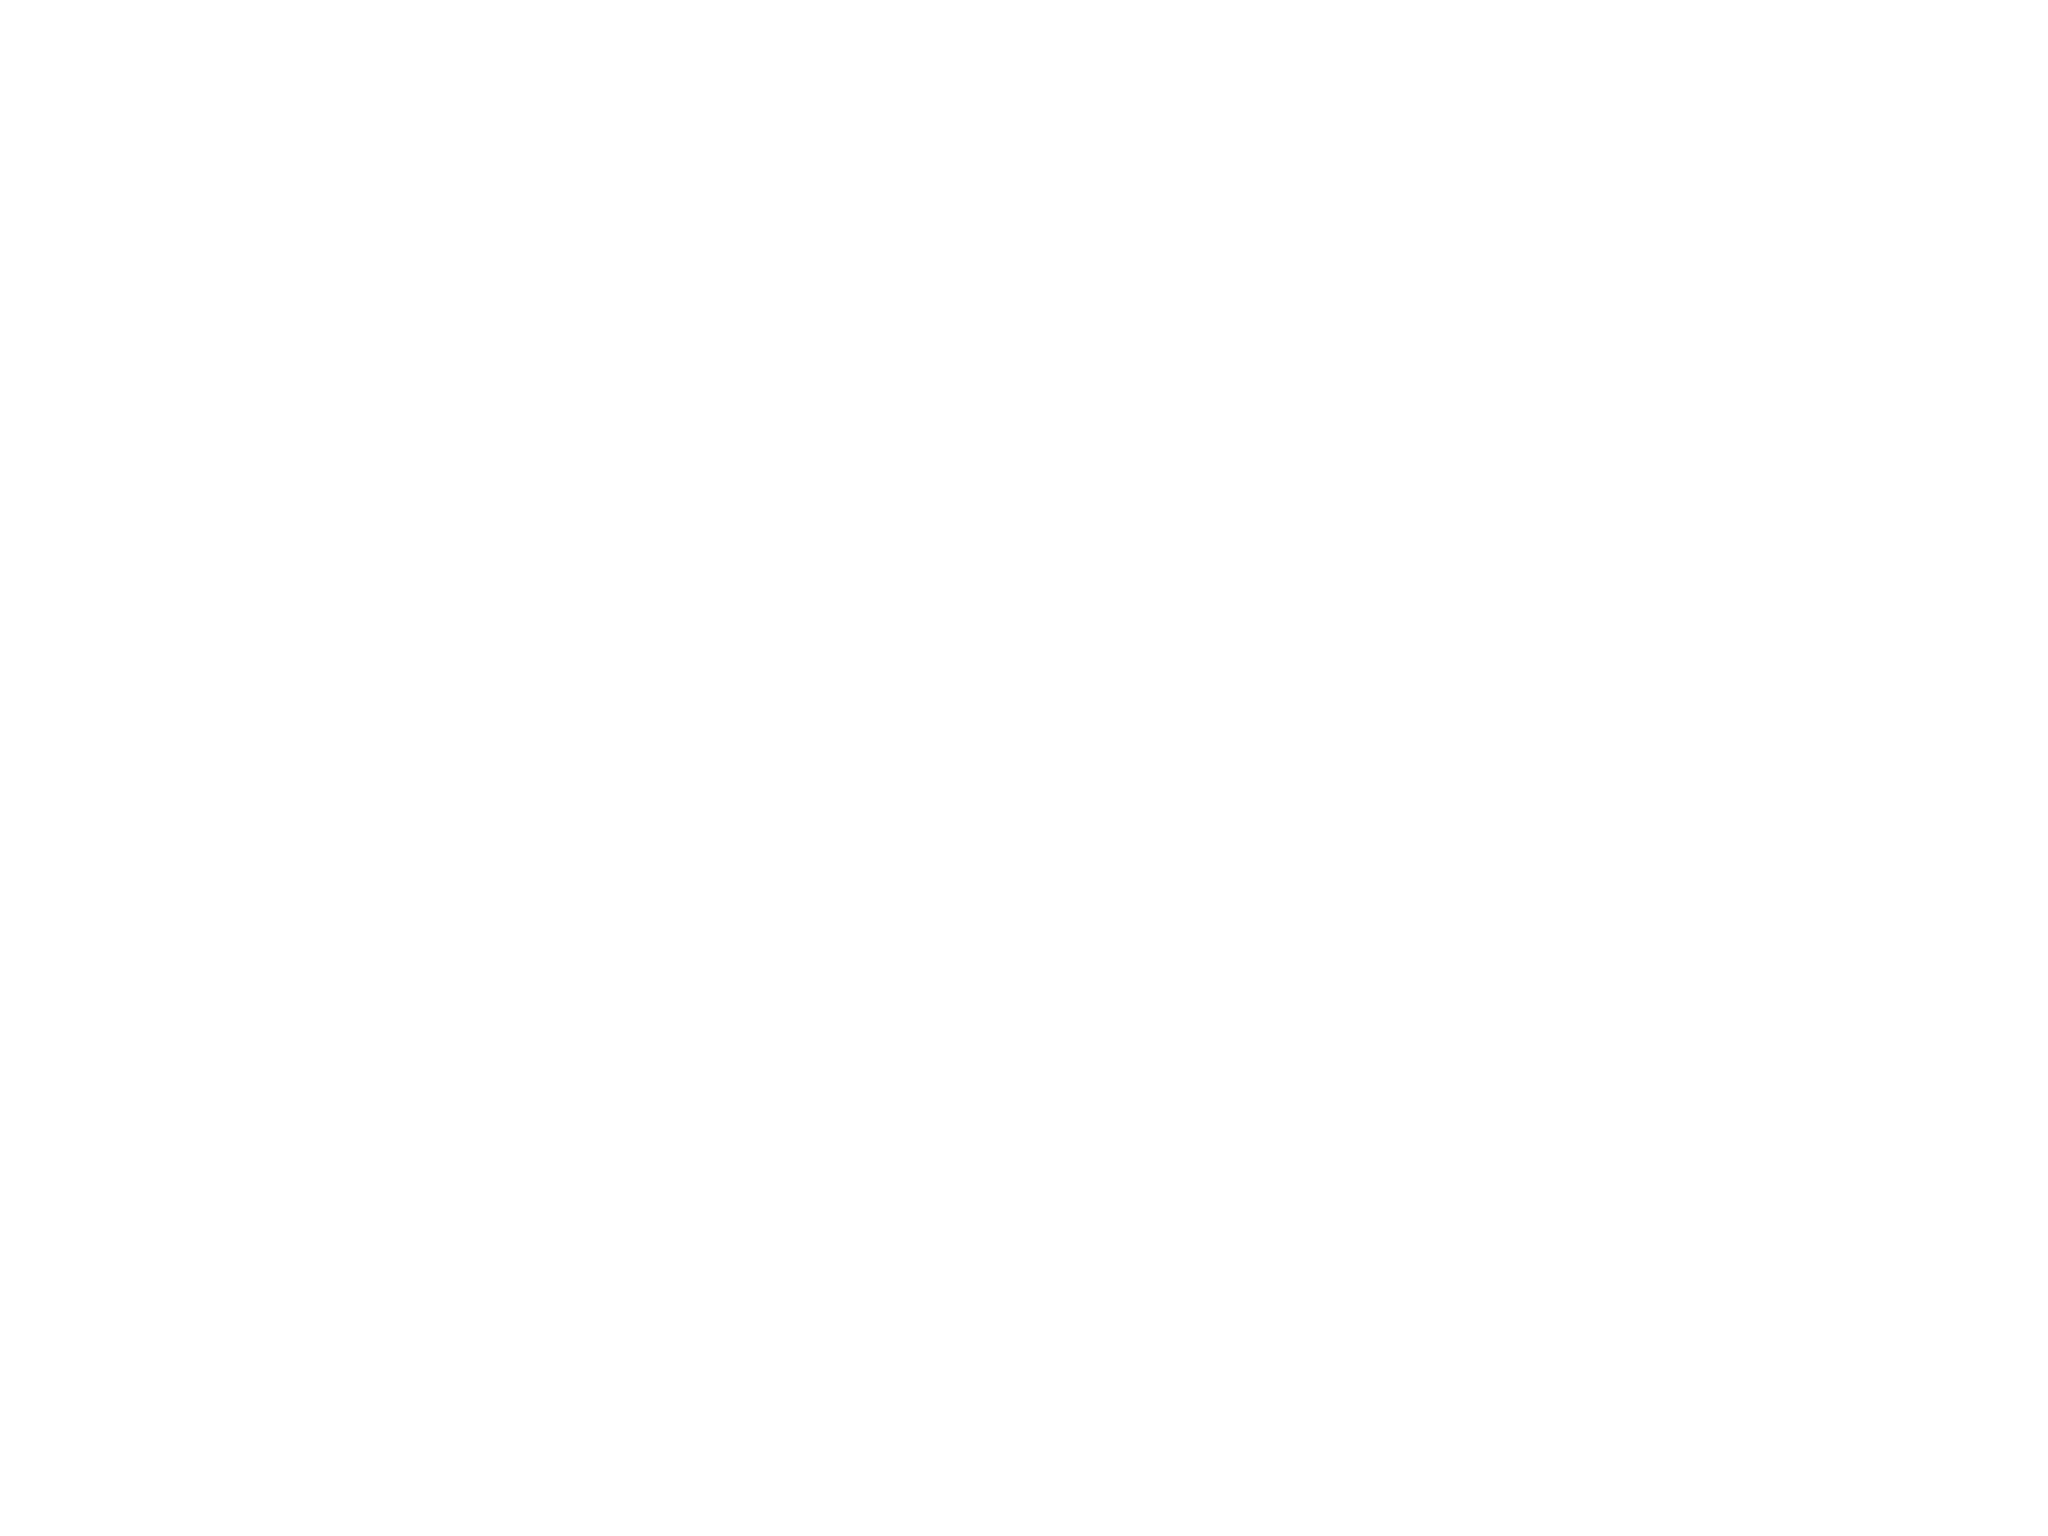 PURSUIT OF QUALITY